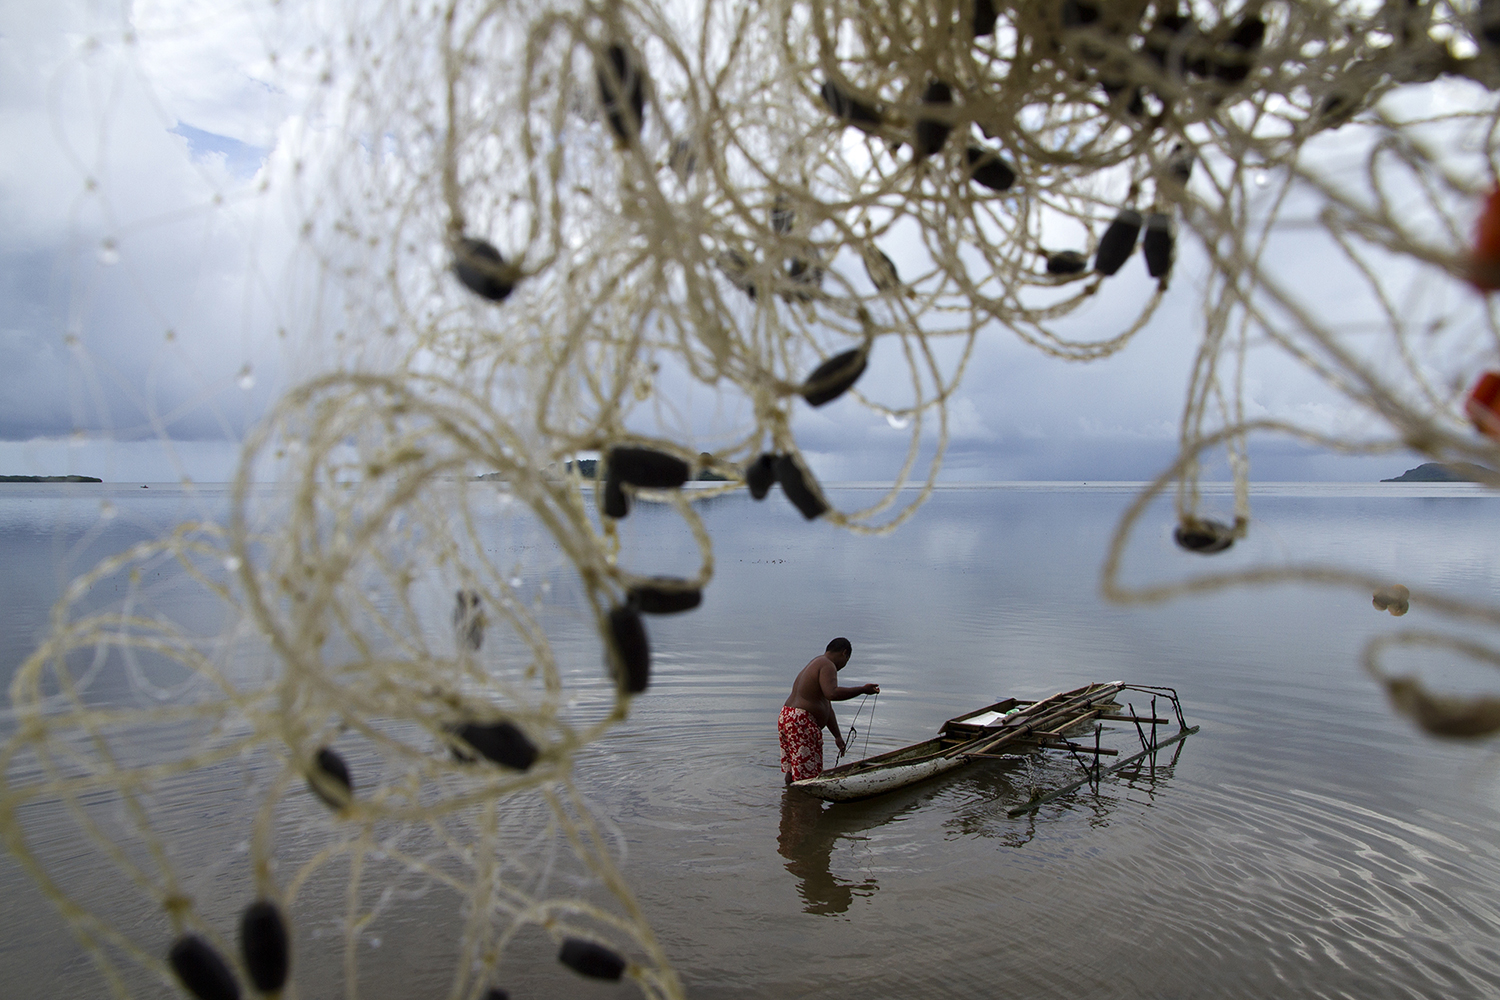 <p>Many fishermen fear that climate change is destroying the habitat and fish stock that they depend on.</p>